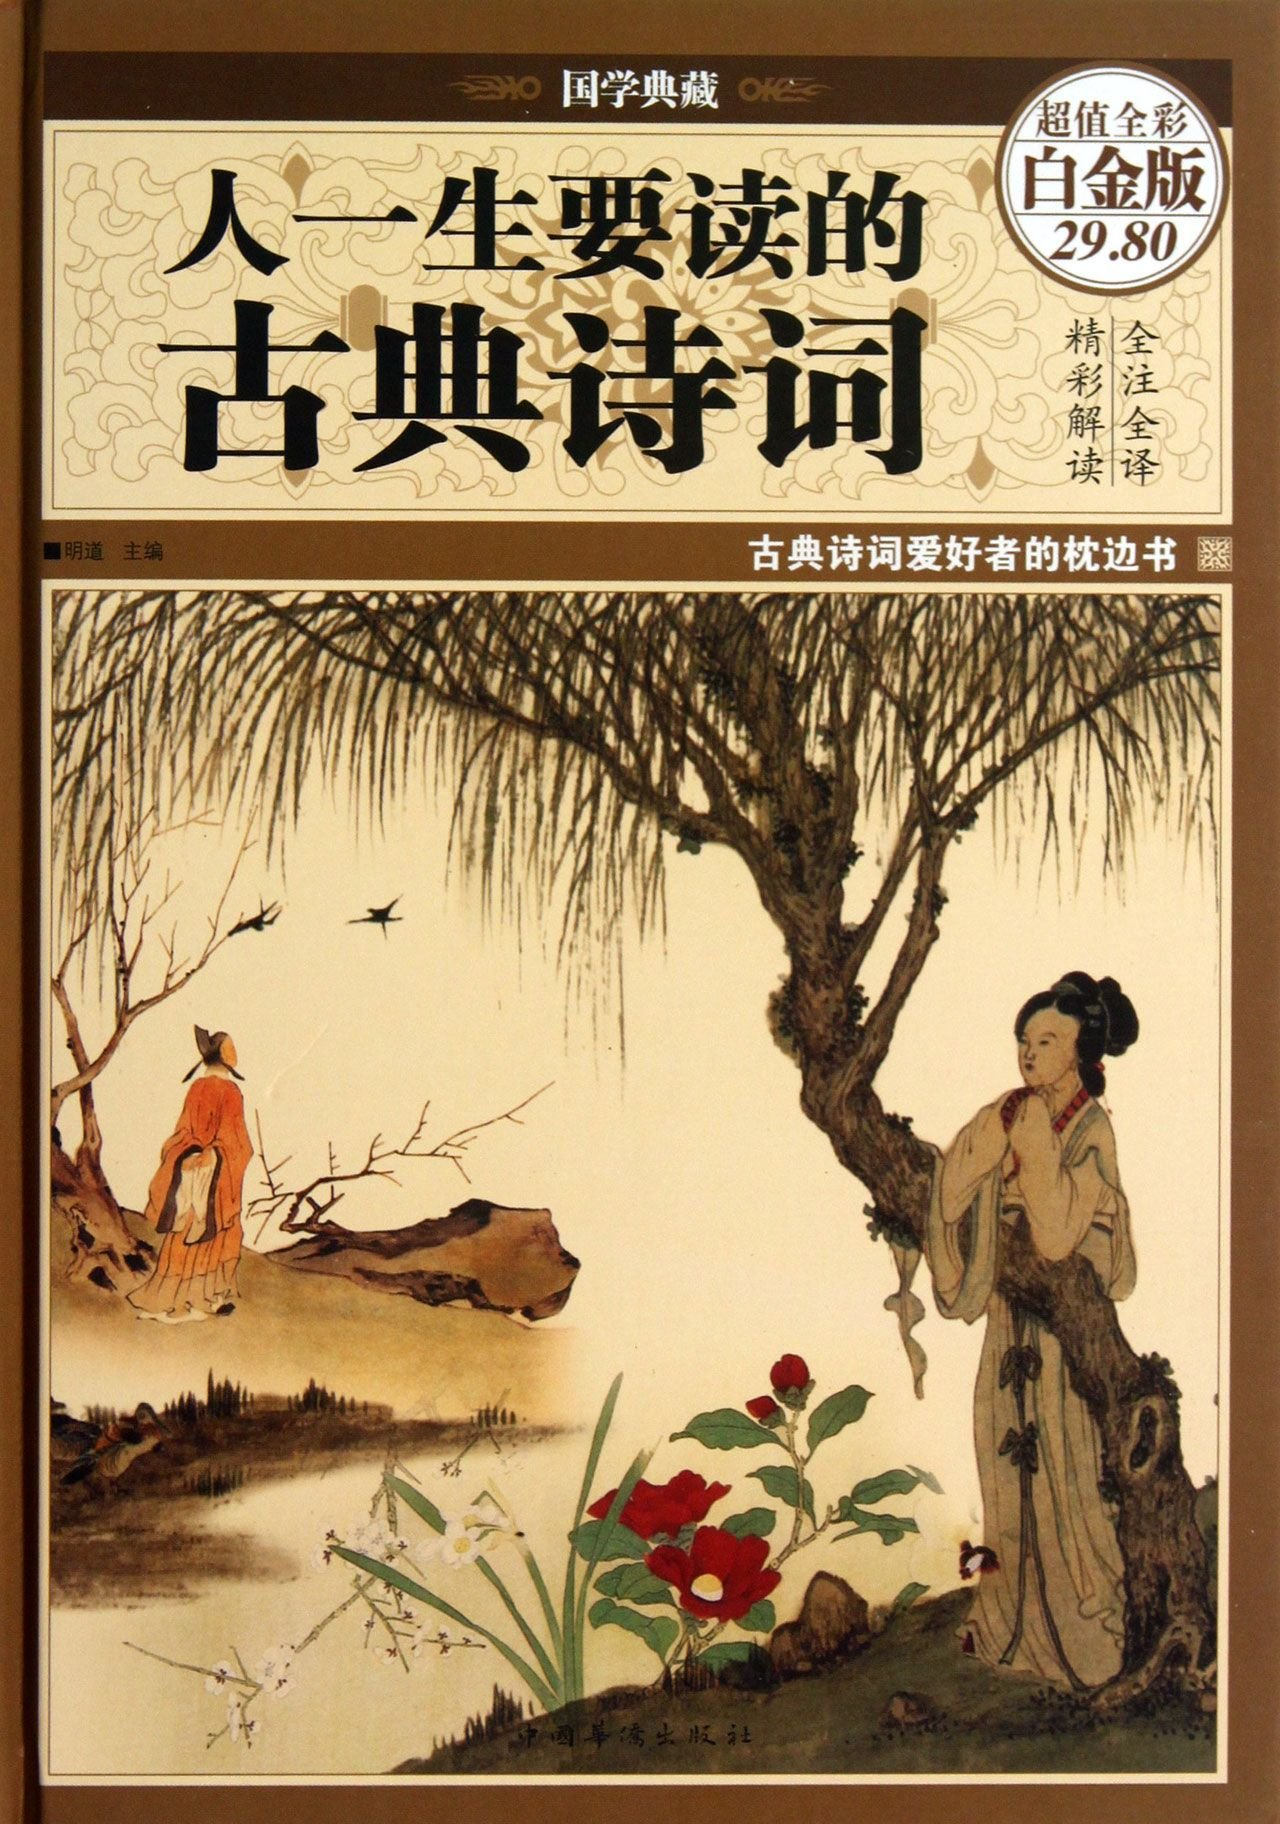 Read Online Person's life to read classical poetry ( Value Full Color Platinum Edition)(Chinese Edition) PDF